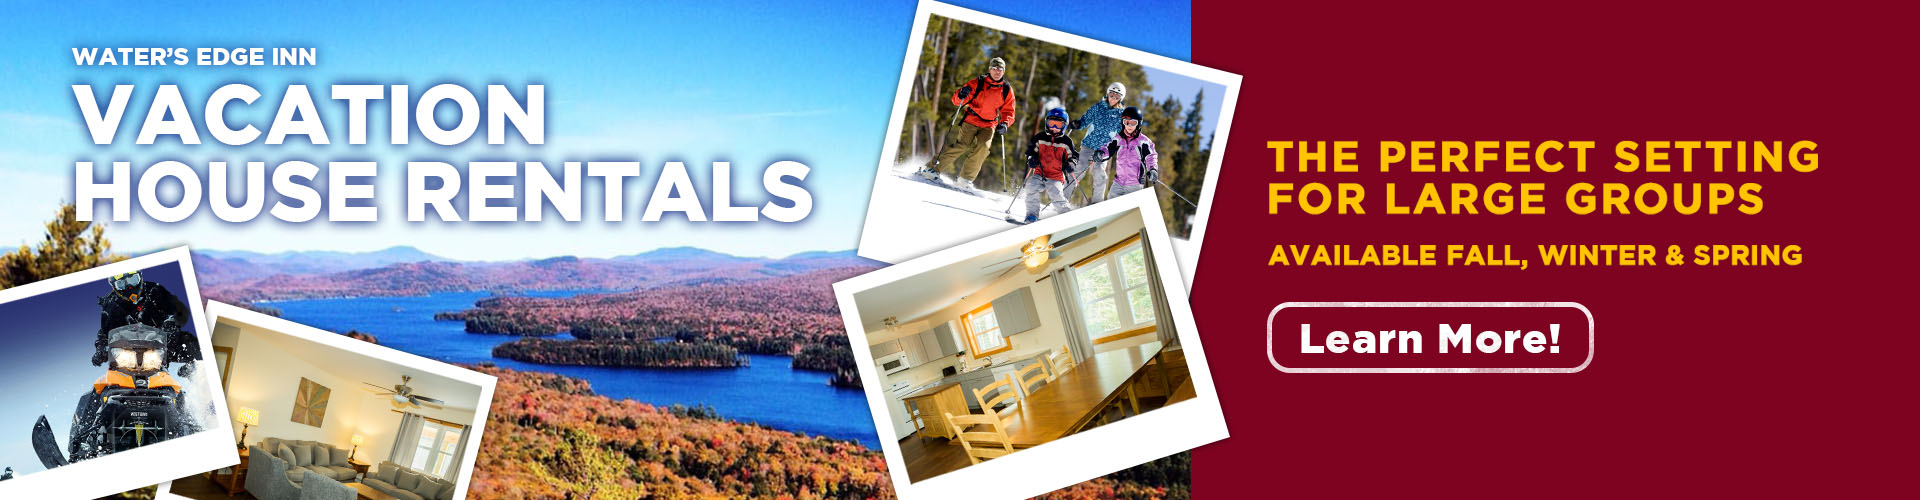 WEI Vacation House Rentals